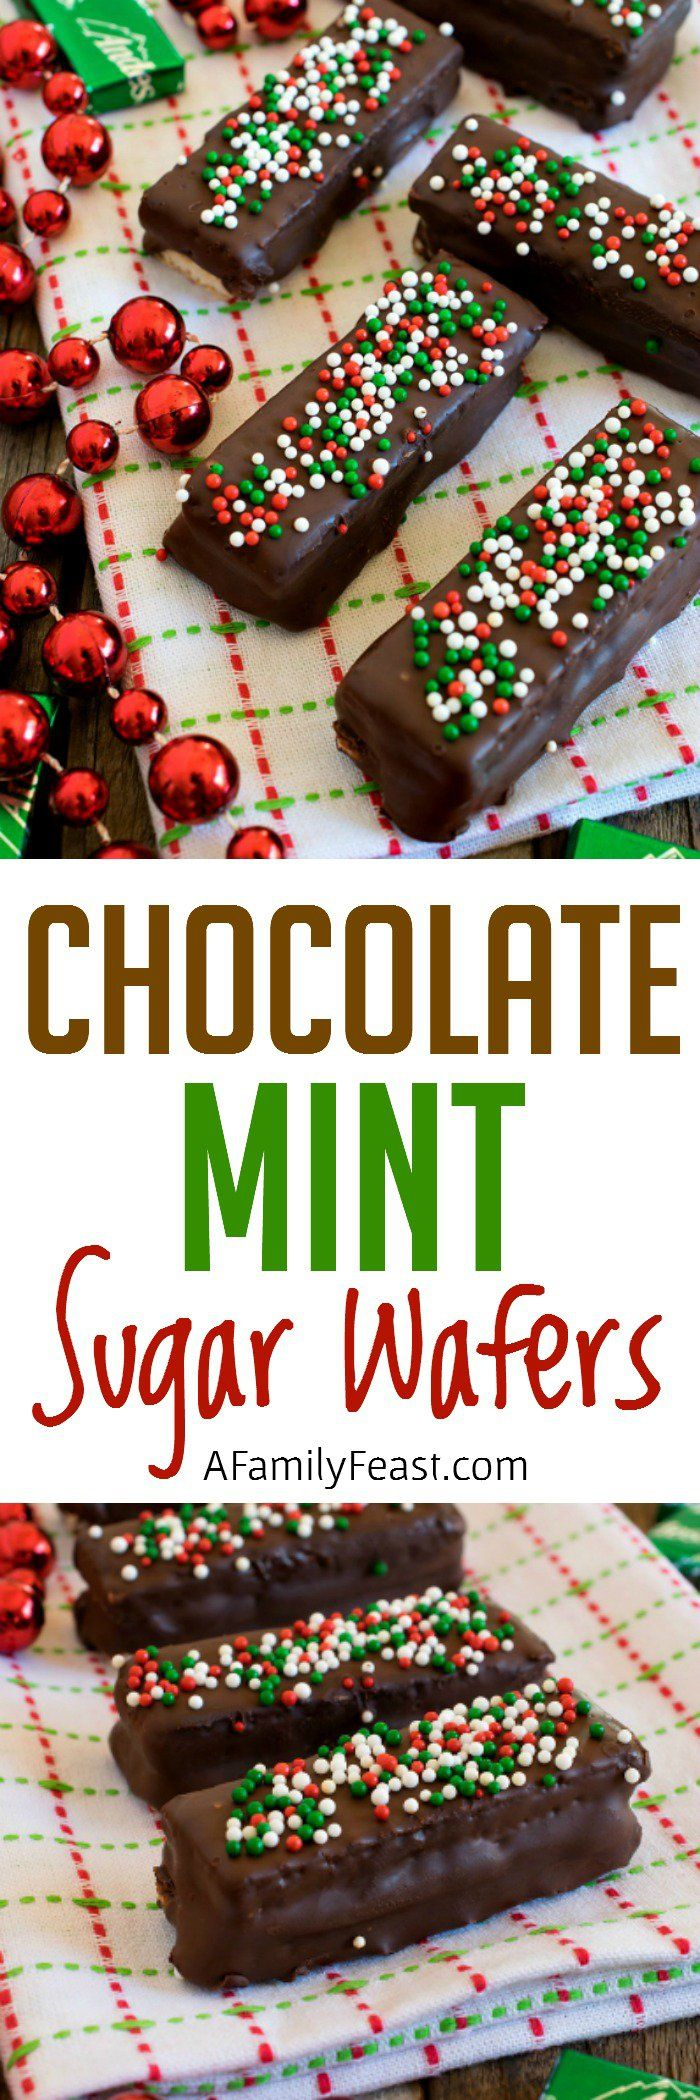 Chocolate Mint Sugar Wafers - Andes mints sandwiched between sugar wafer cookies, then dipped in chocolate. A quick, easy and festive idea for your holiday cookie tray!